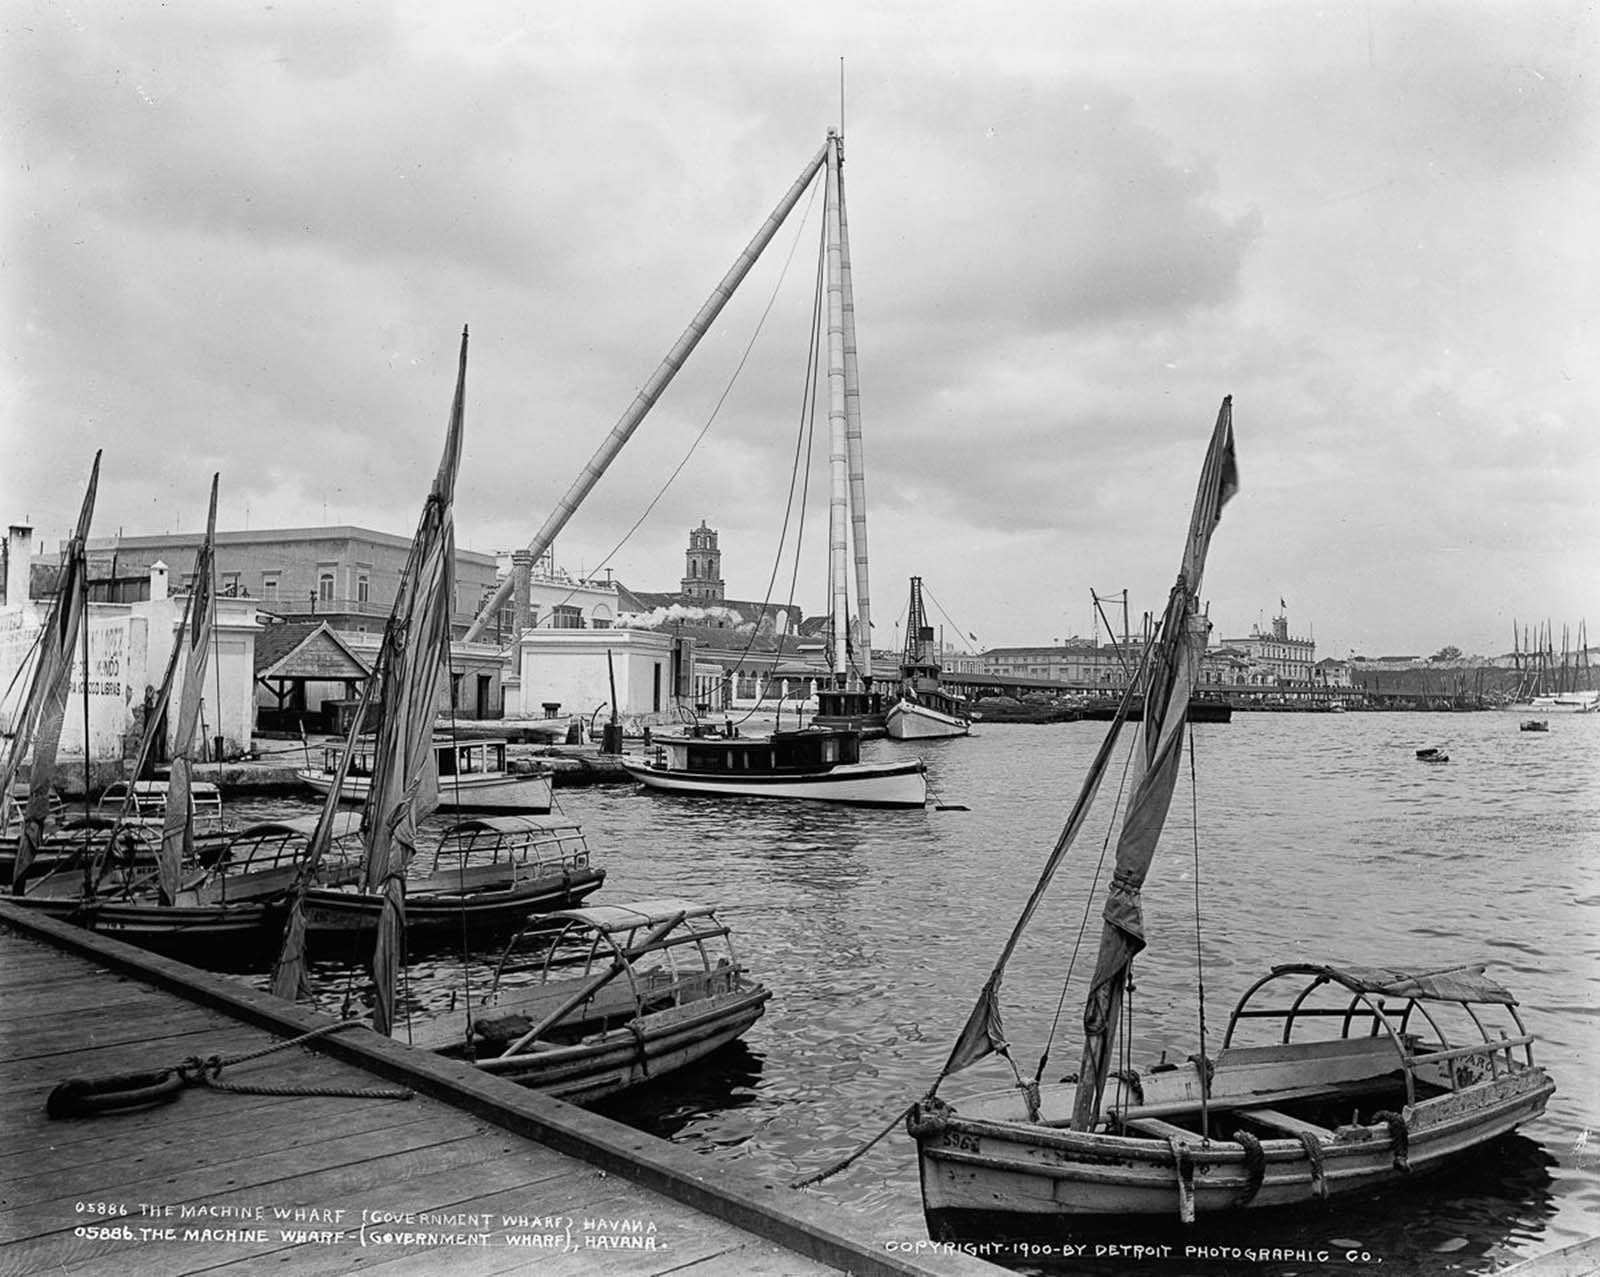 The machine wharf, 1900.